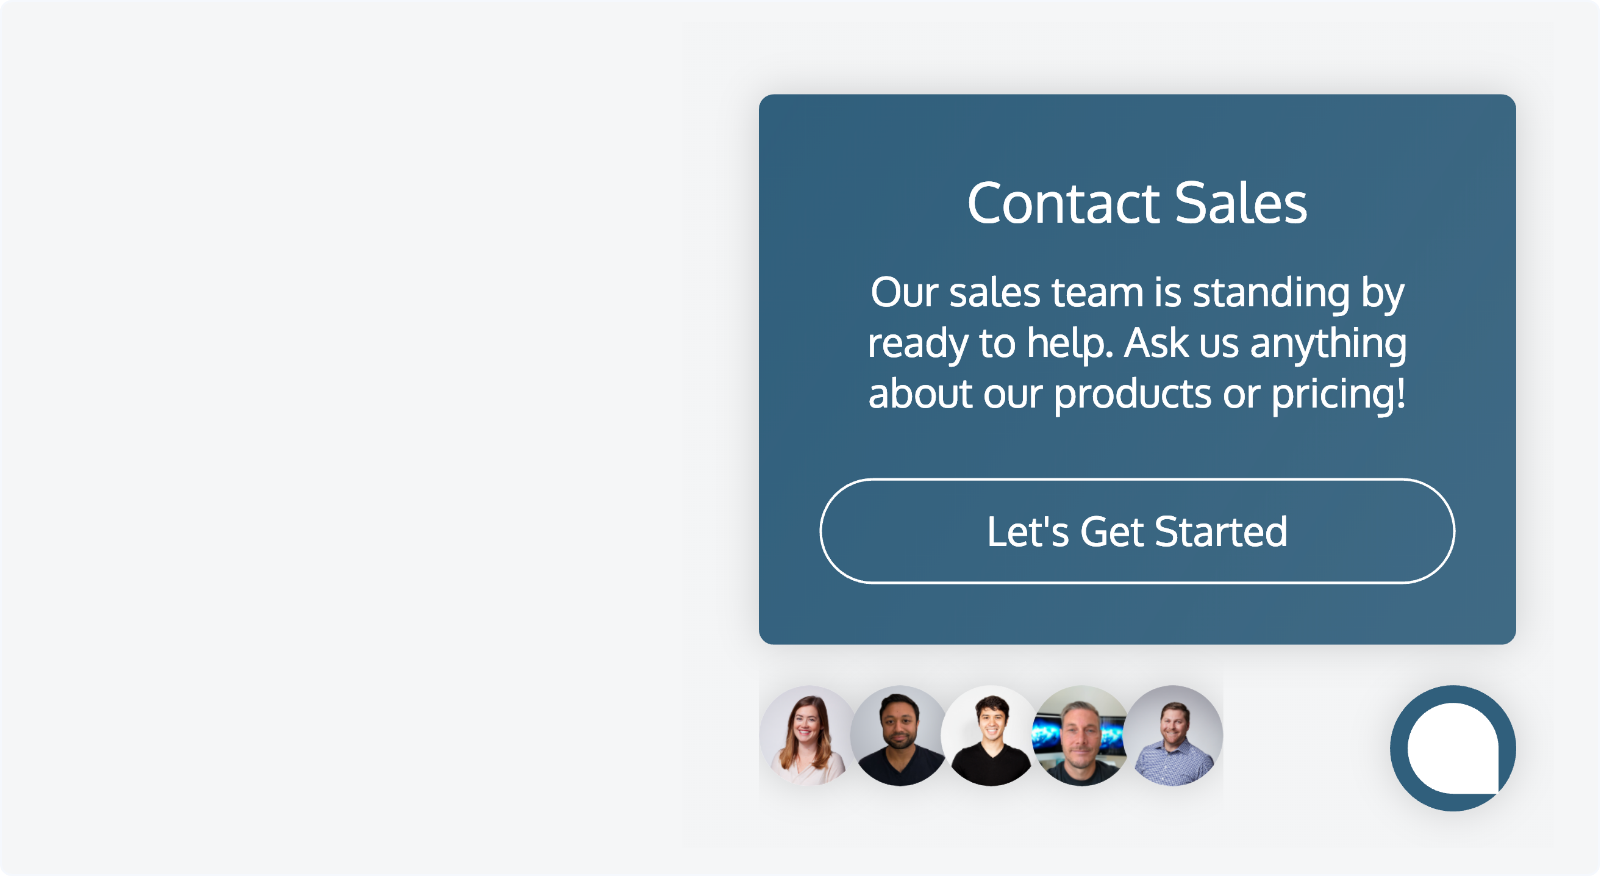 LeadBot presents an offer to connect with your sales team